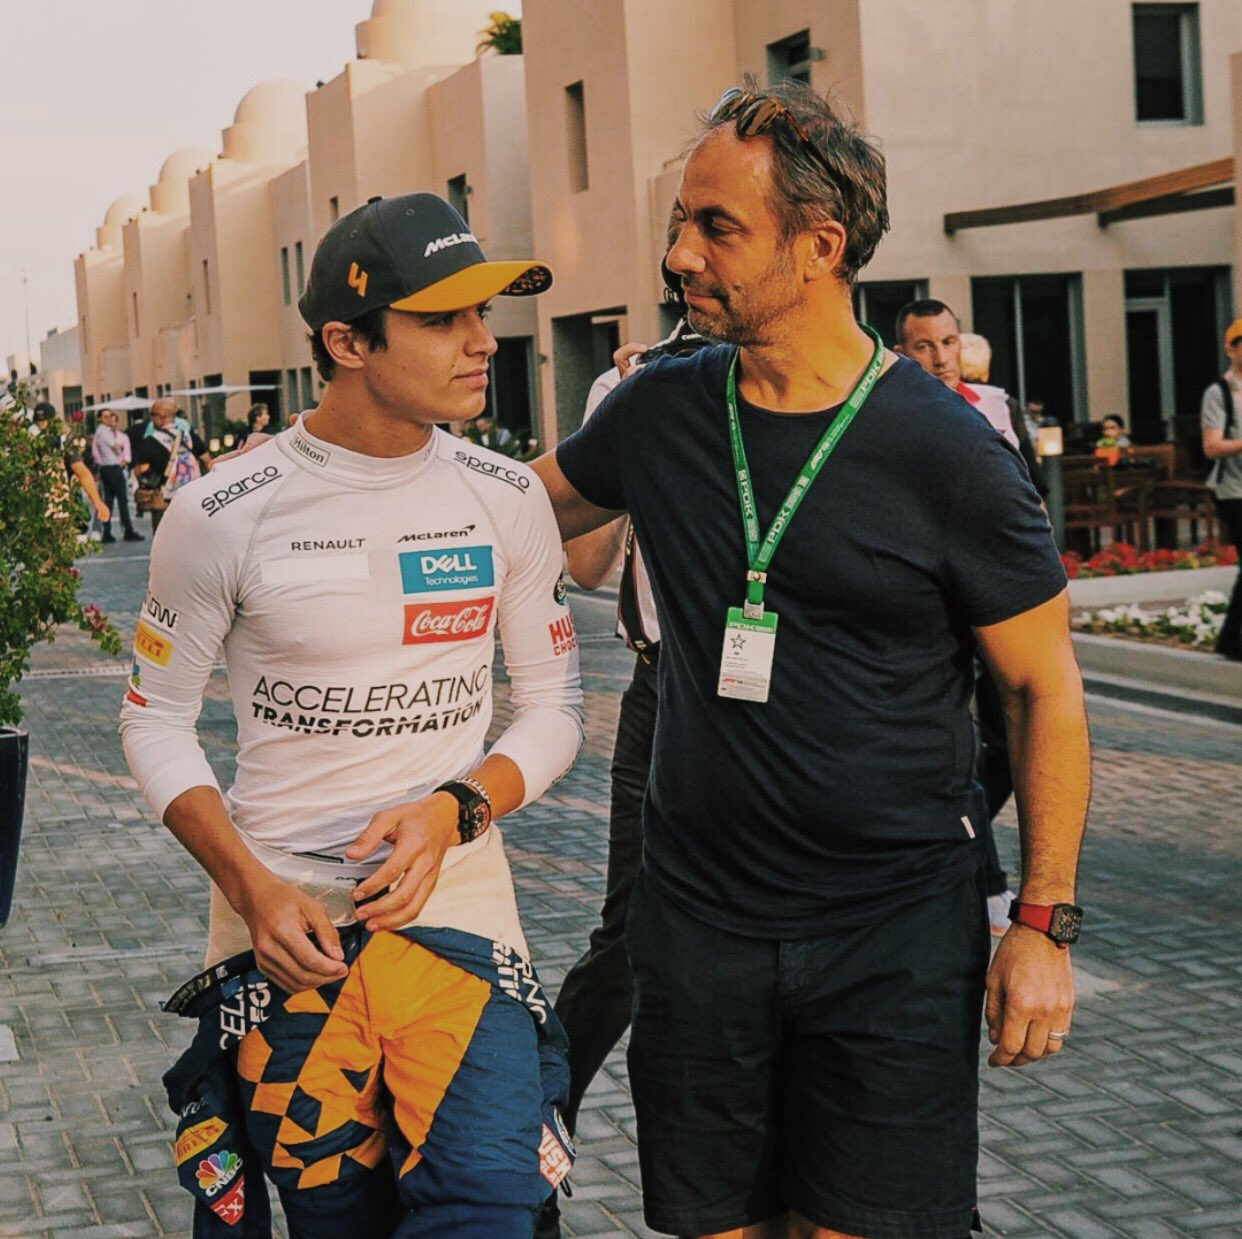 """Lando Norris Updates on Twitter: """"Happy Father's Day to all the incredible  Dad's out there 🧡 #L4NDO #LN4 #F1 #FathersDay… """""""